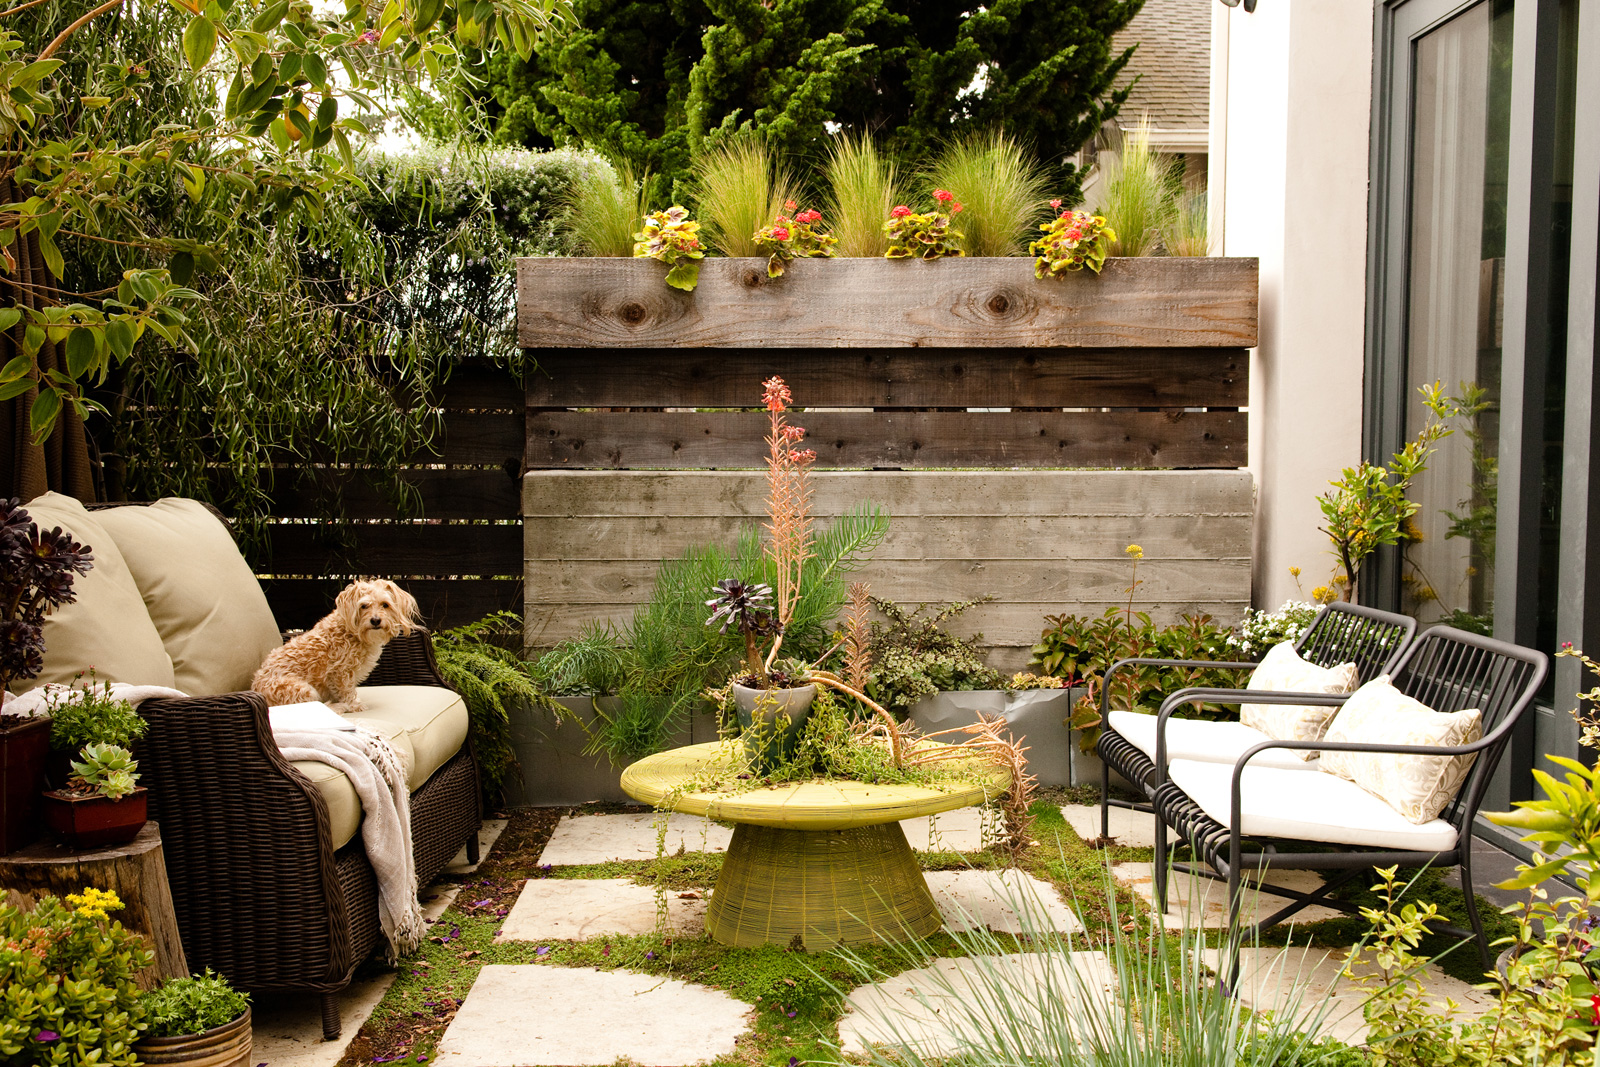 Small Backyard Ideas | How To Make a Small Space Look Bigger on front yard with garage, home with garage, backyard ideas ranch home, landscaping with garage, backyard ideas lake, backyard ideas shed, backyard ideas pool, backyard ideas large yard, backyard ideas patio, backyard ideas houses, backyard ideas garden, outdoor kitchen with garage, backyard ideas modern, basement ideas with garage,